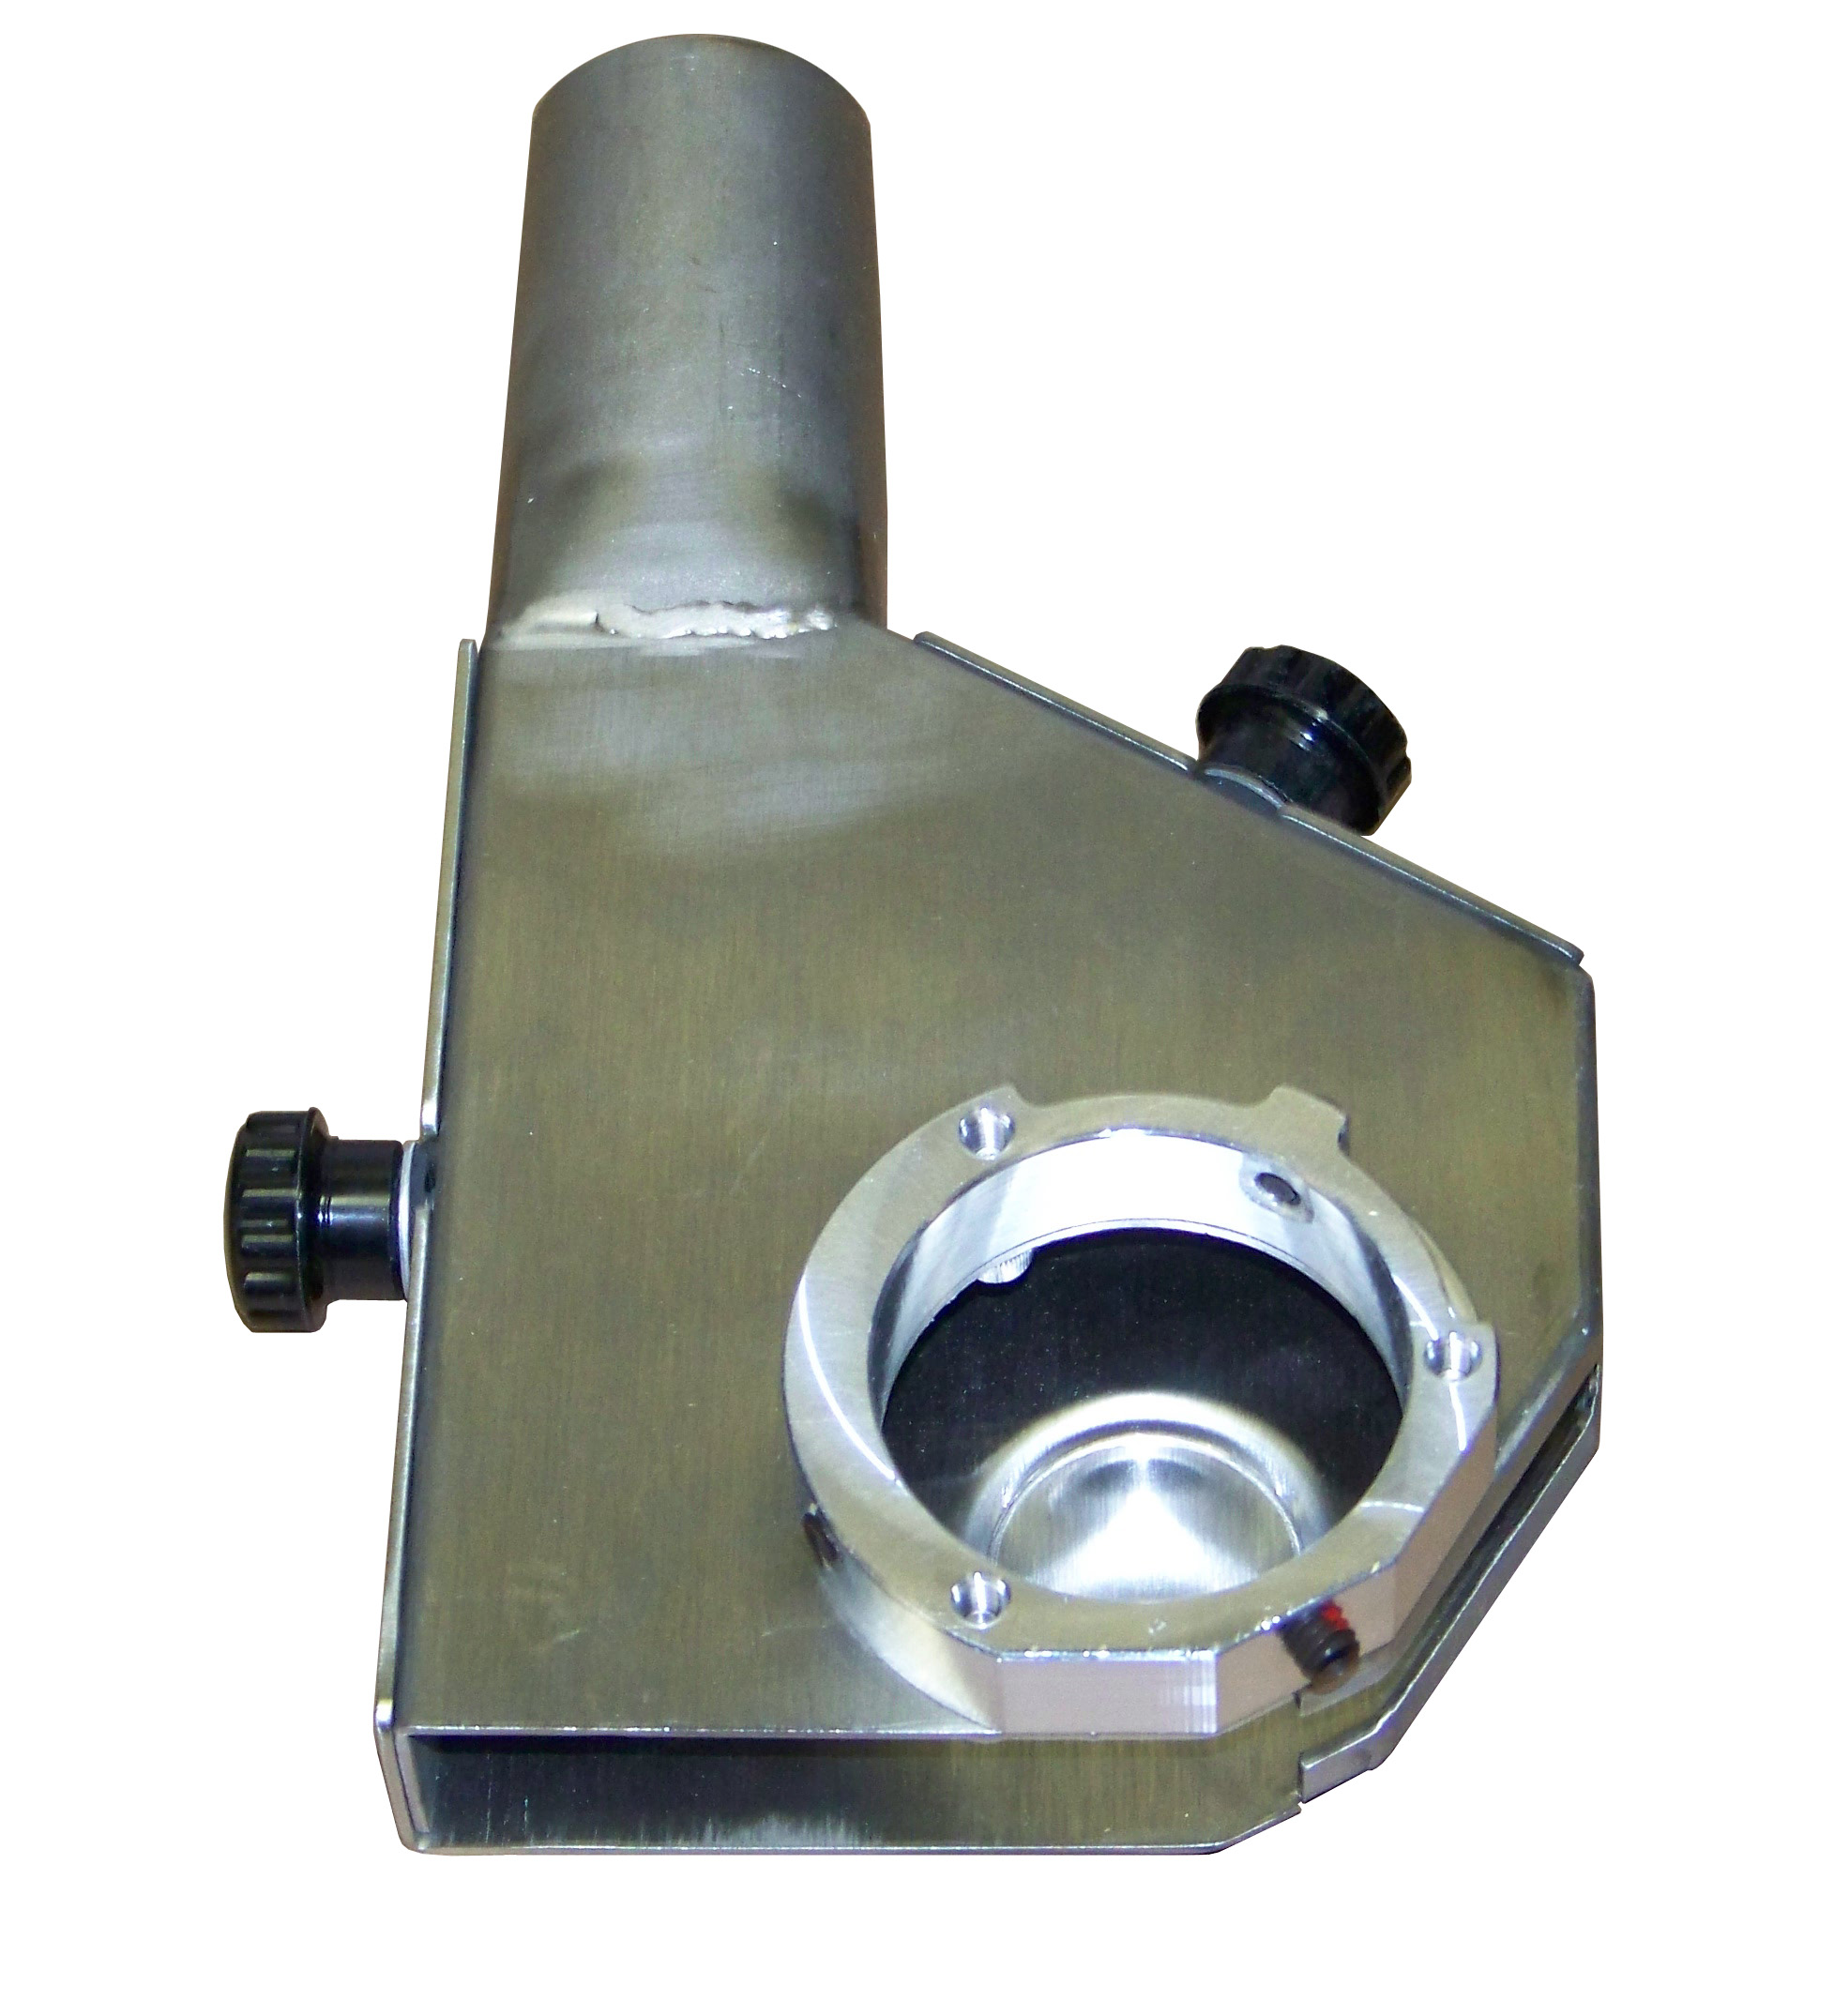 Power Tools Amp Accessories Attachments For Dustless